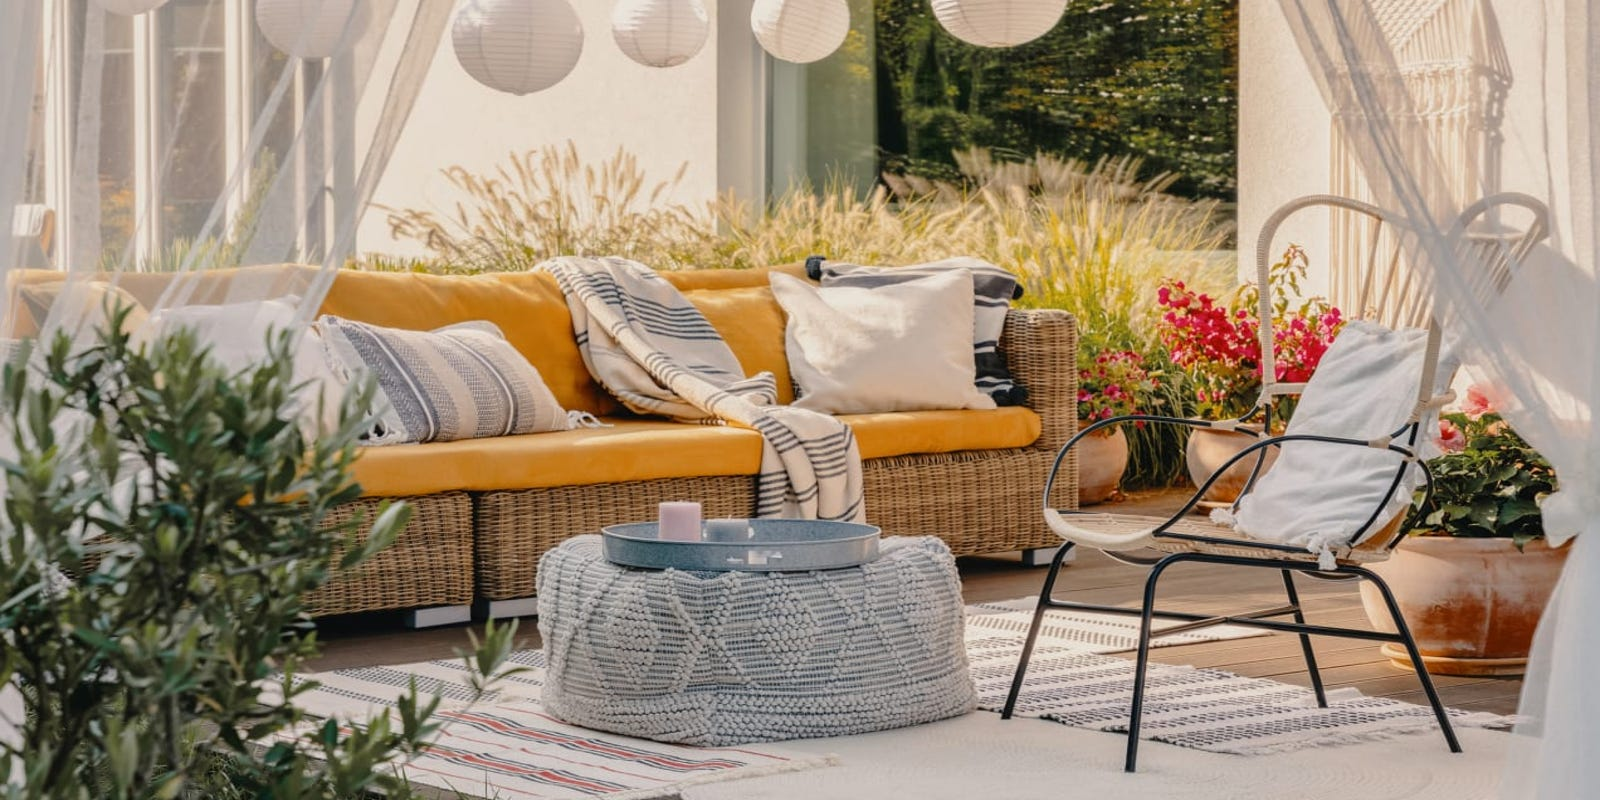 Patio furniture is hugely discounted right now for Overstock's Semi-Annual Sale